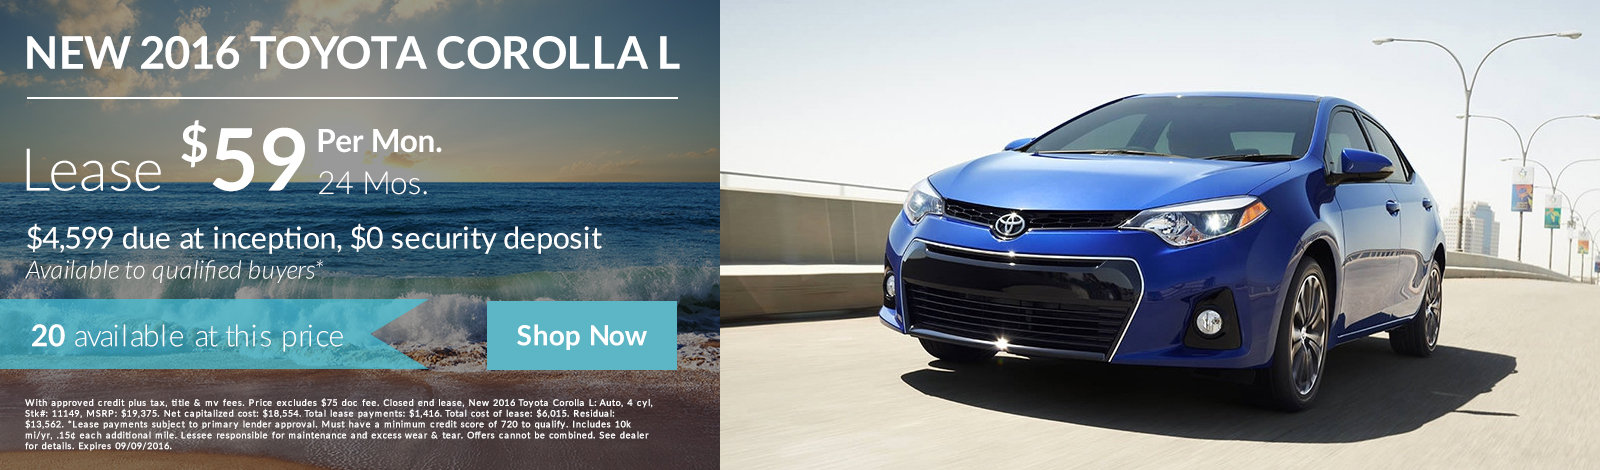 toyota dealership near nyc lease specials corolla